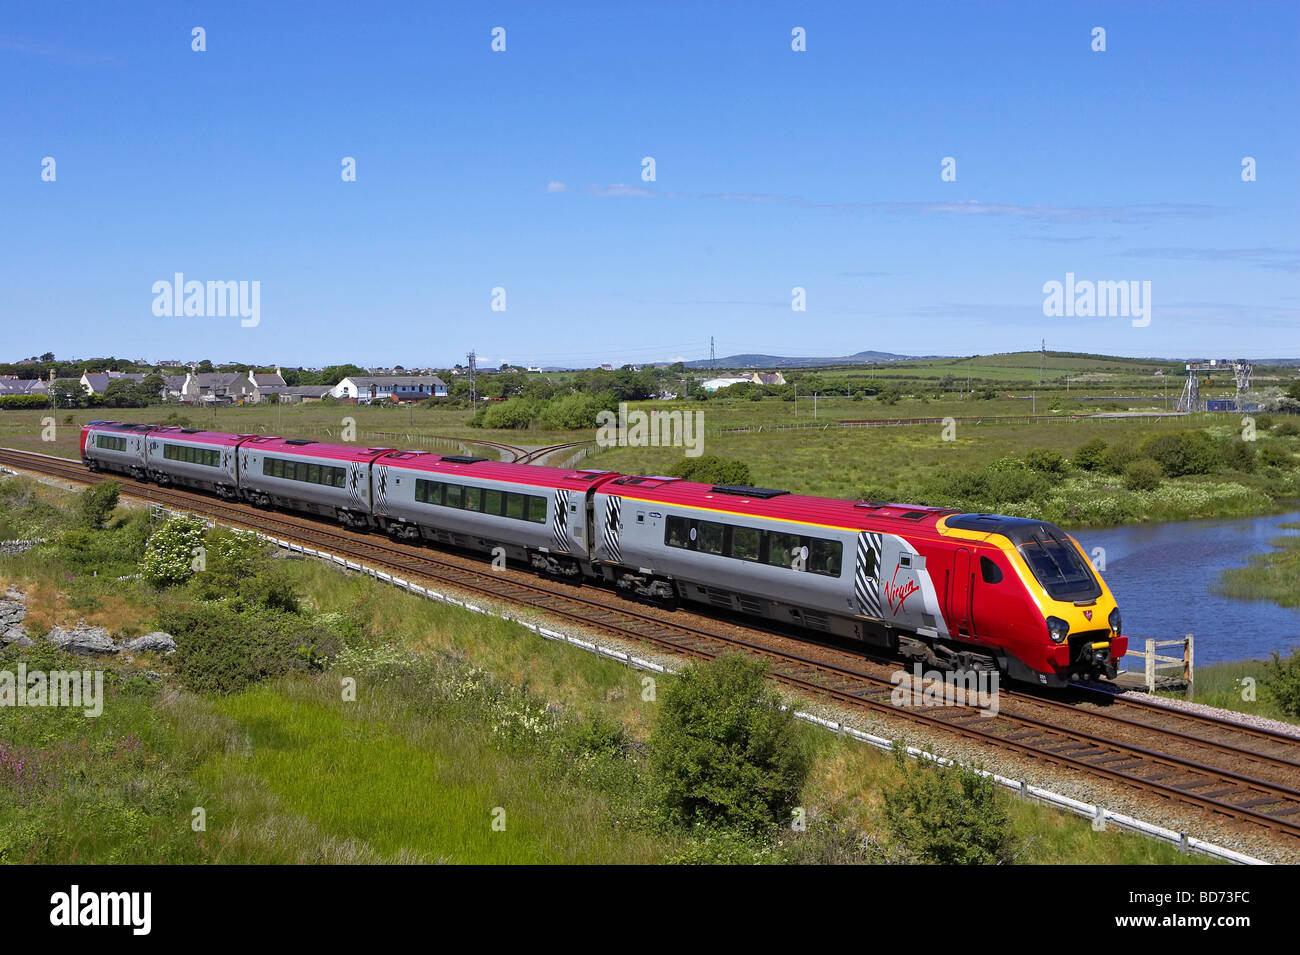 Virgin Super Voyager 221 108 passes Valley on Anglesey with a Holyhead Euston service on 27 06 09 Stock Photo